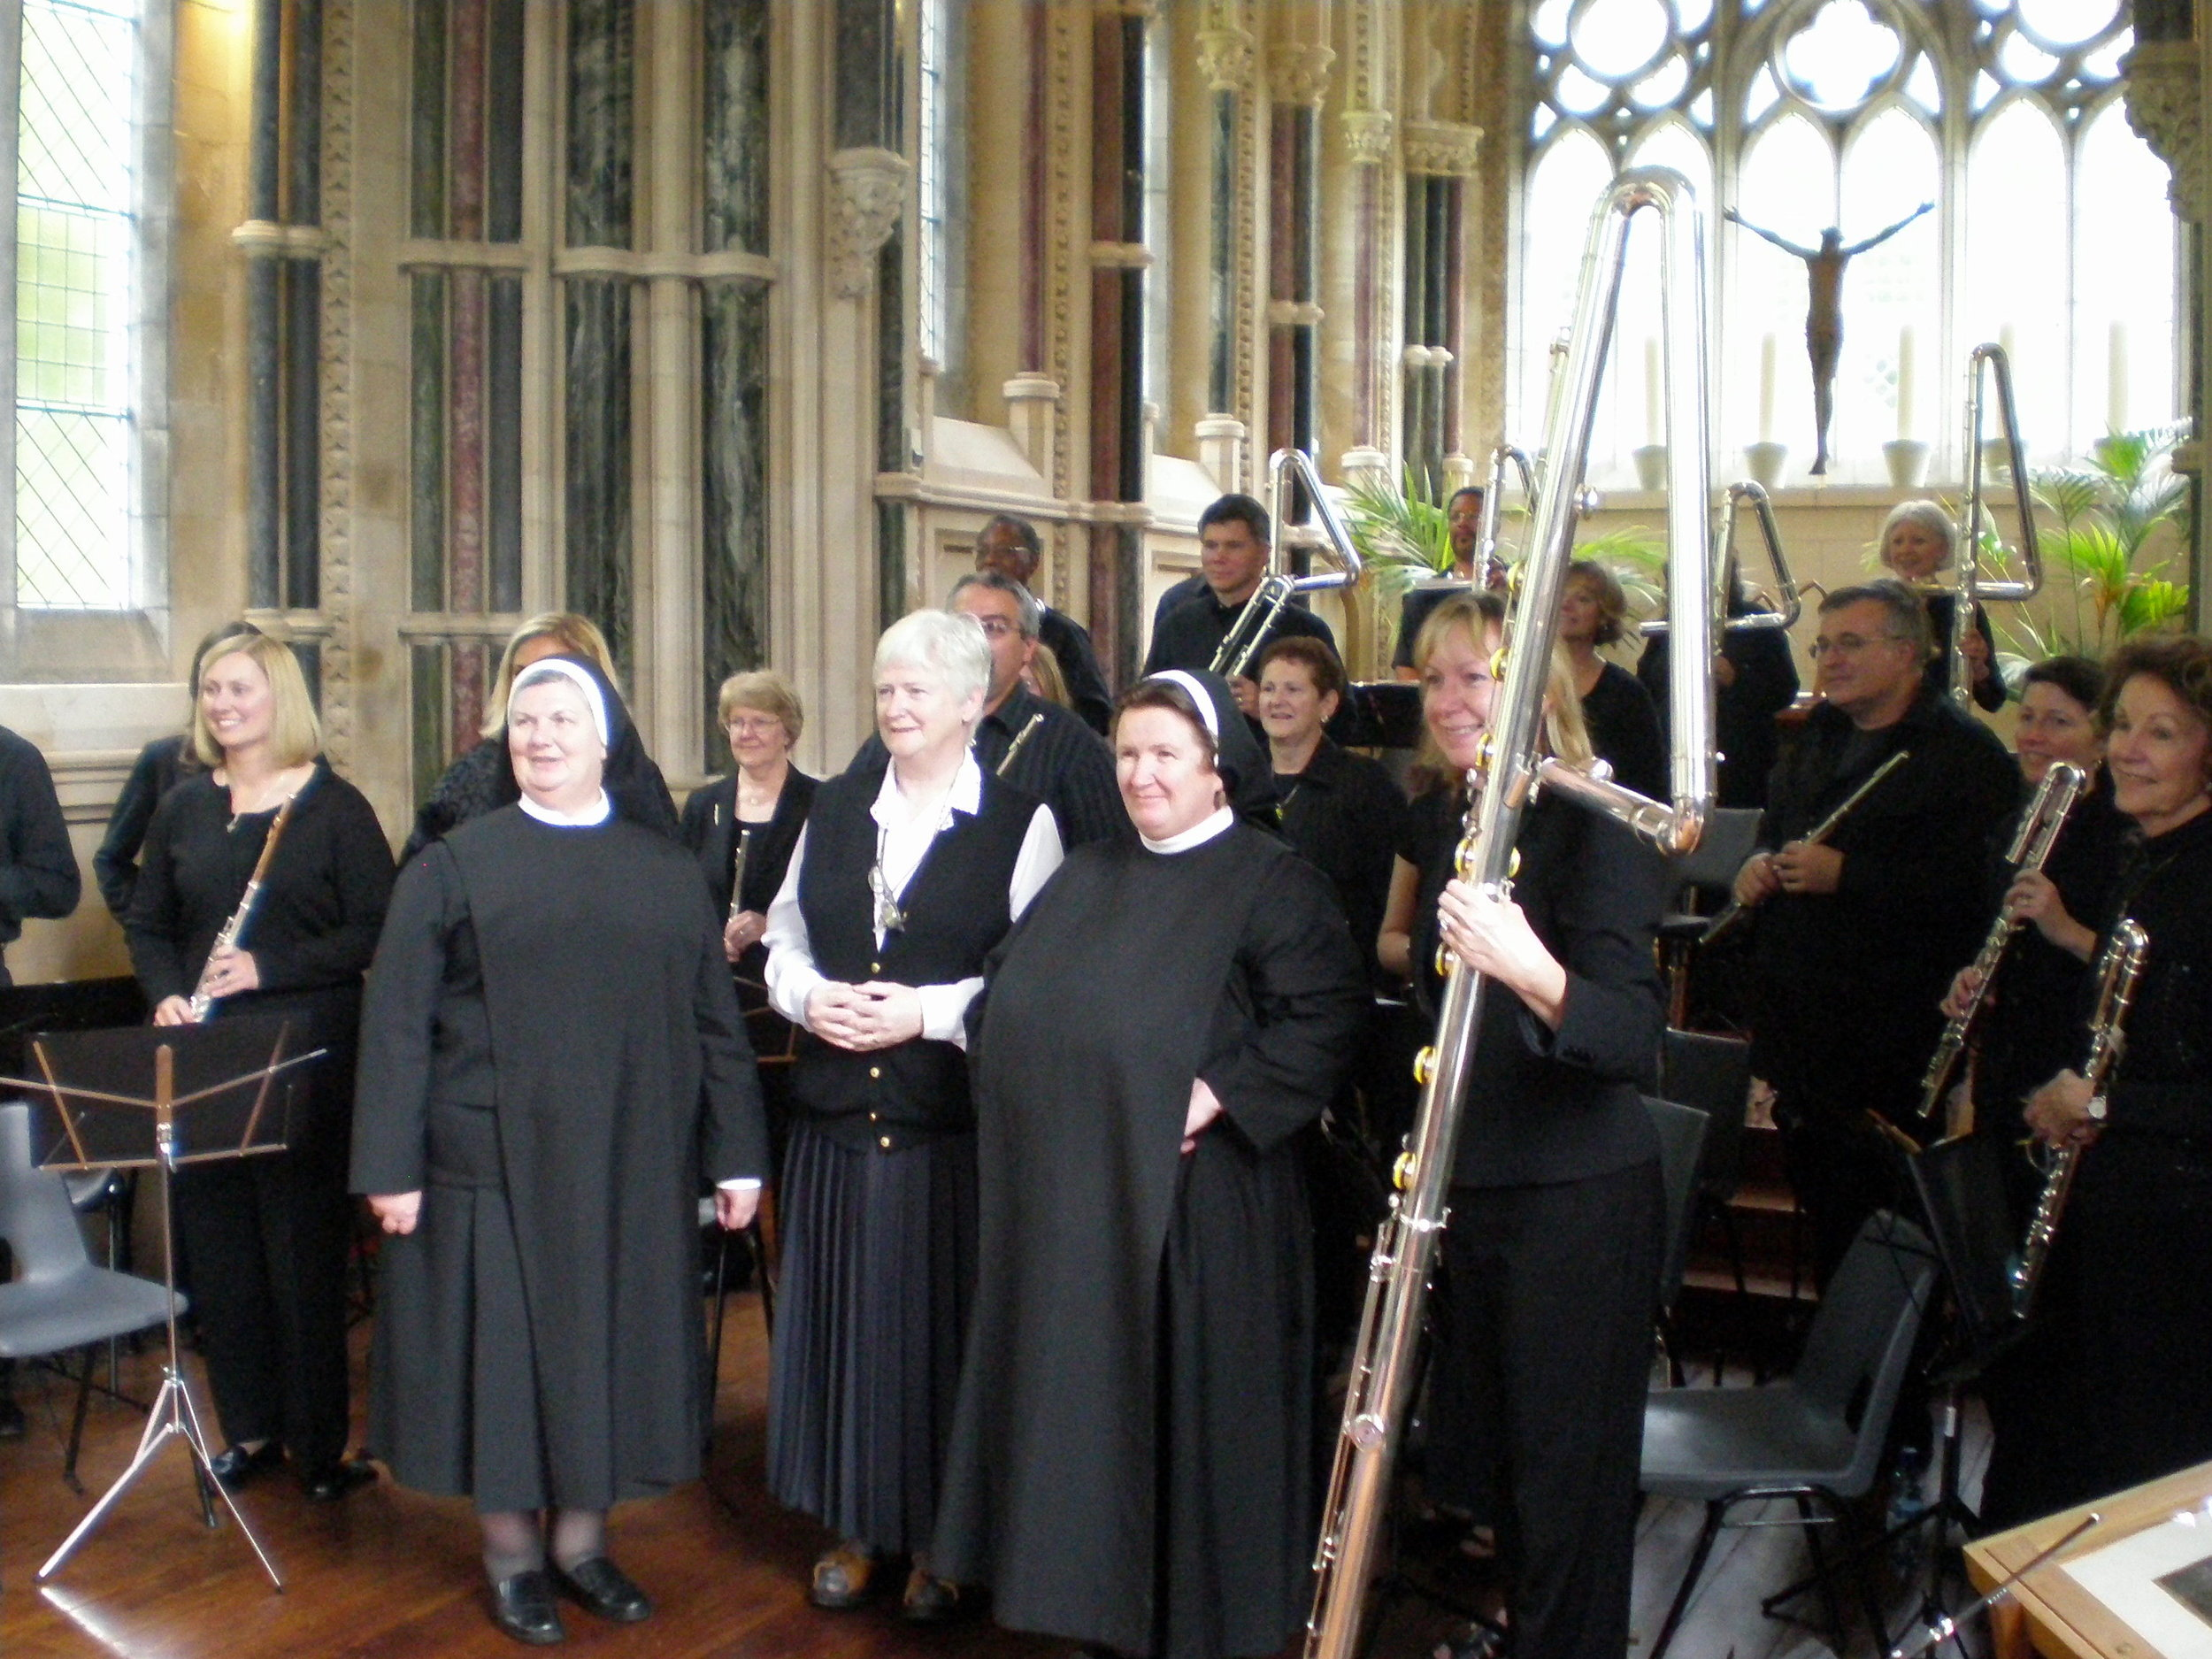 Visiting the nuns after the performance at Kylemore Abbey